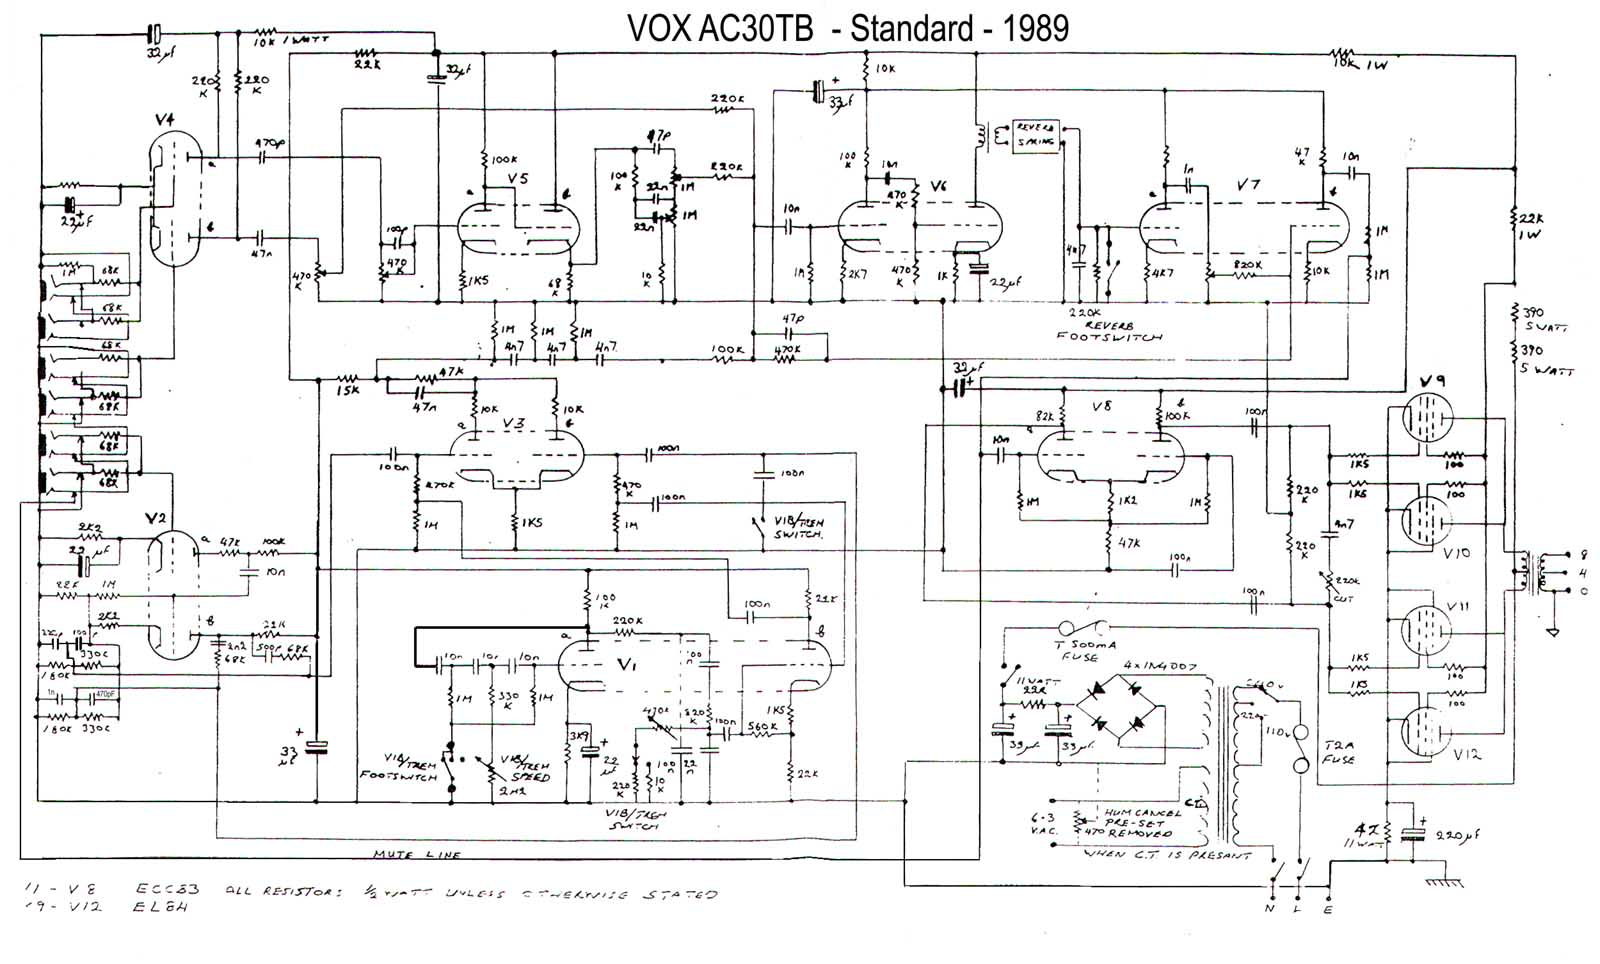 Vox Vintage Circuit Diagrams Wiring Diagram For Telecaster Free Download Schematic Ac30 Top Boost 1989